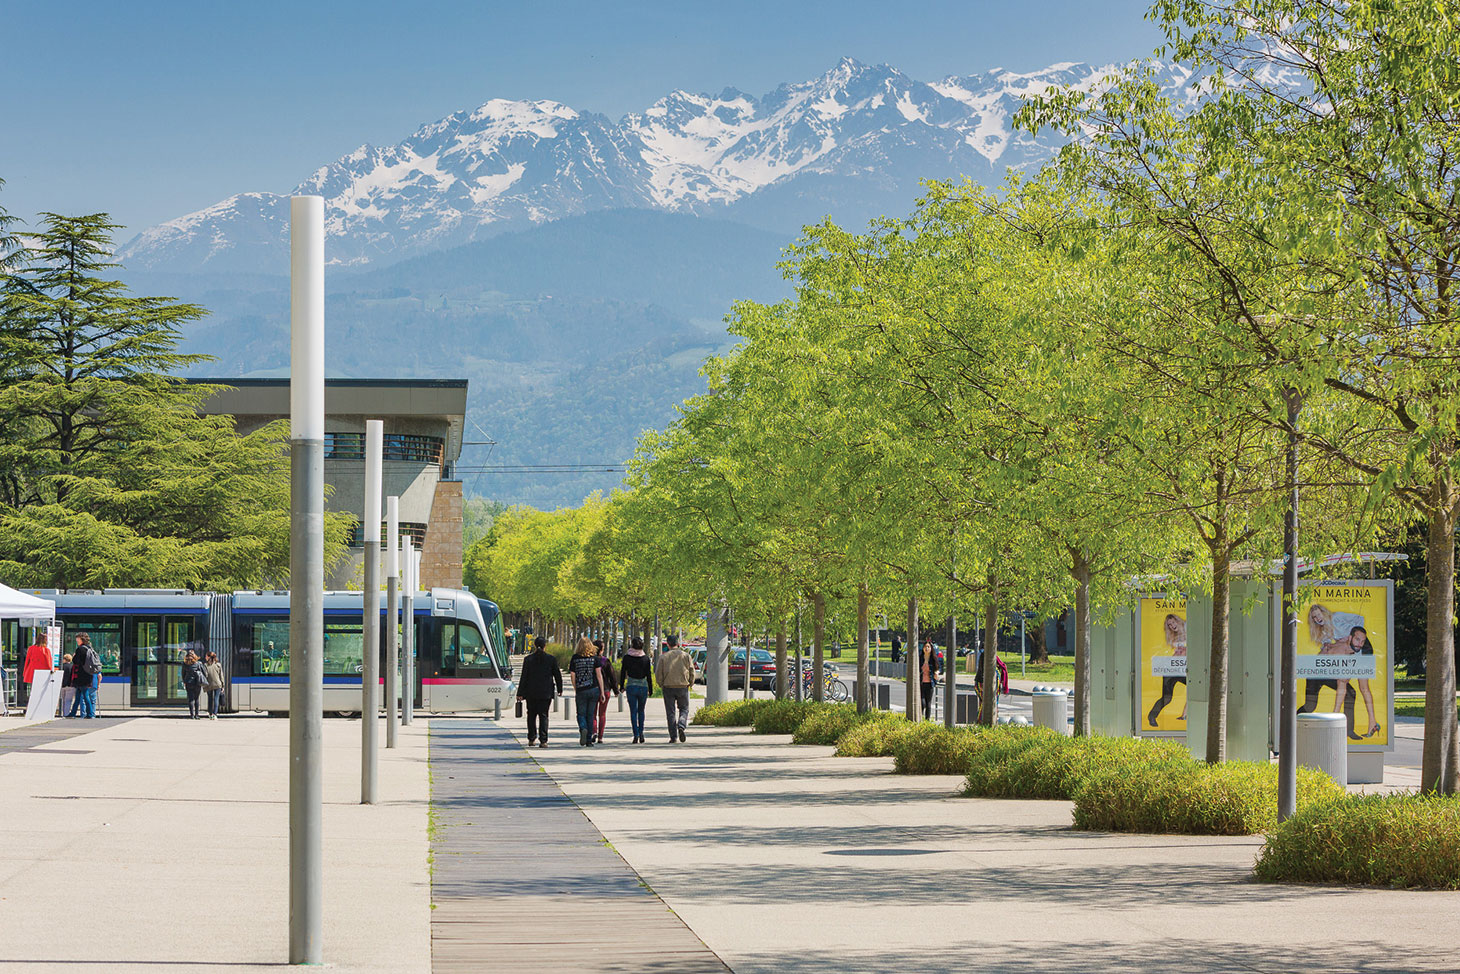 Le campus universitaire de Grenoble